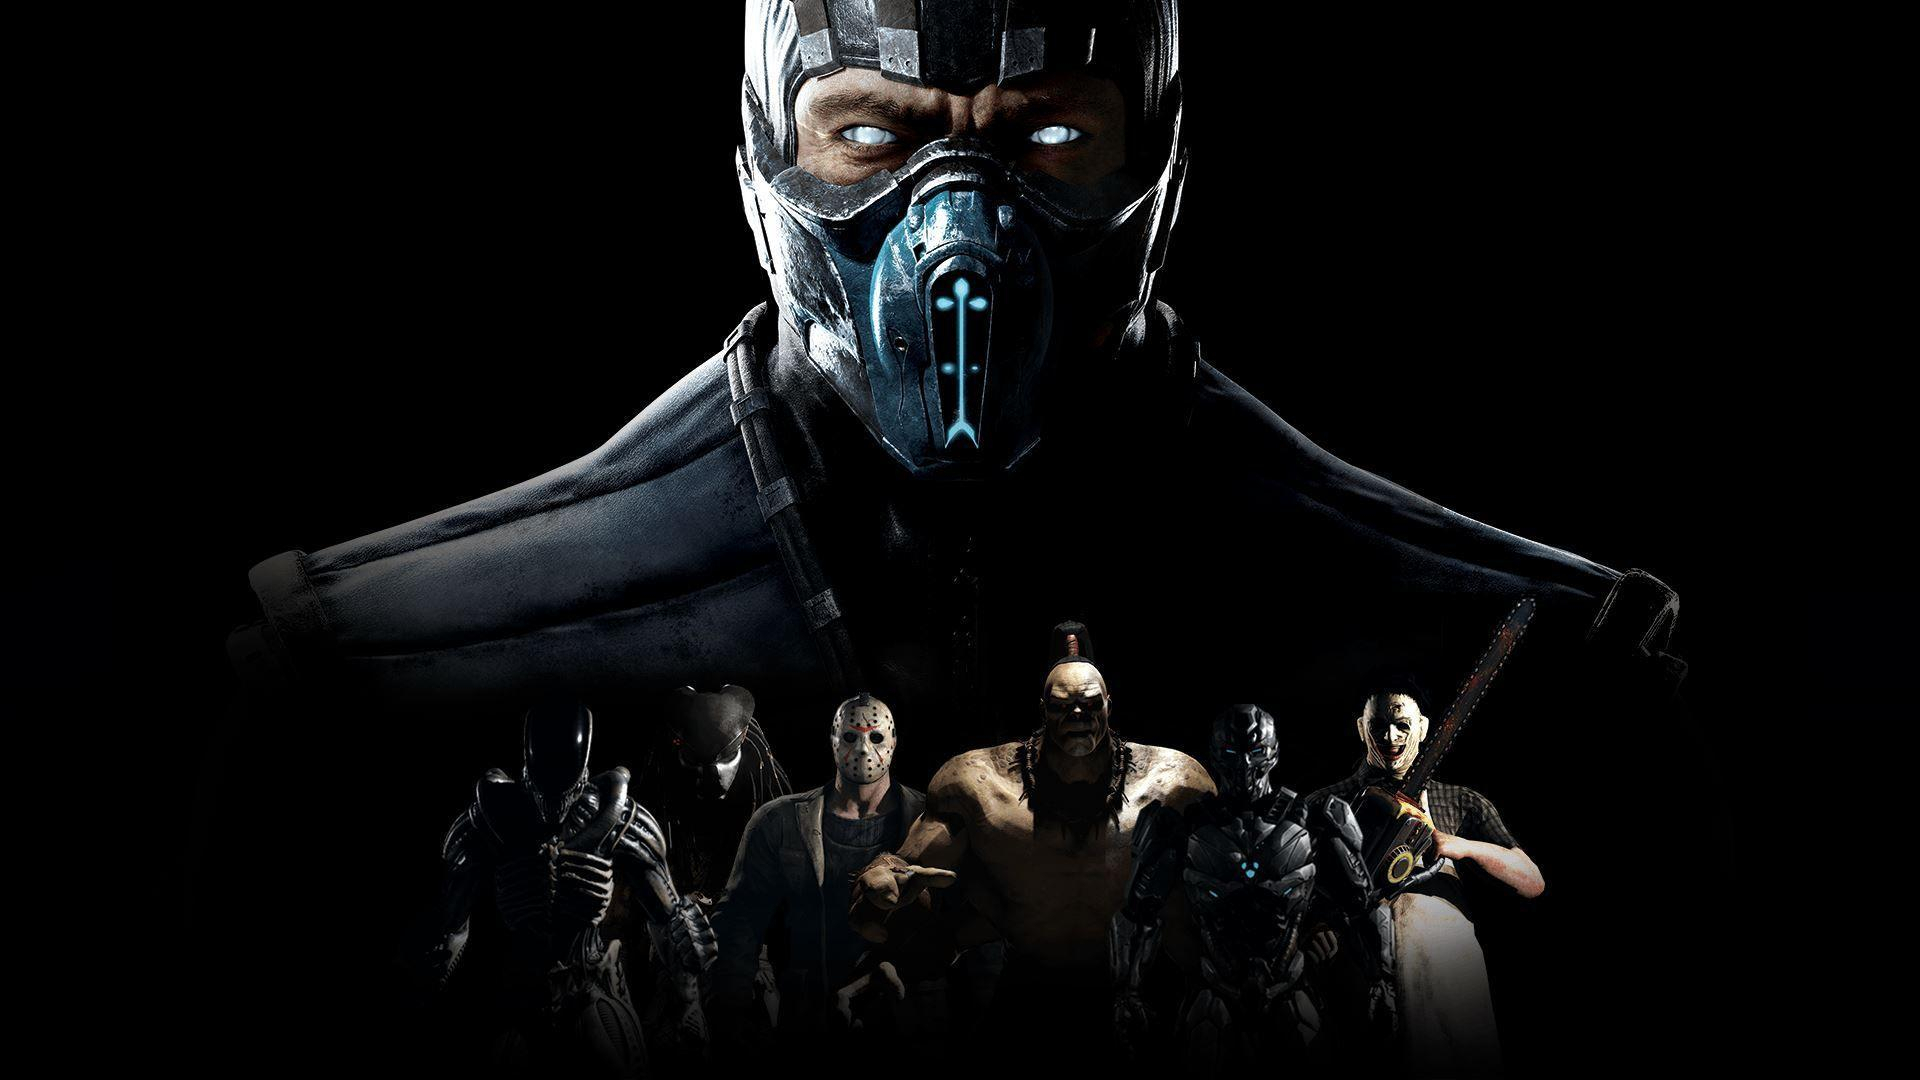 mortal kombat xl wallpapers - wallpaper cave